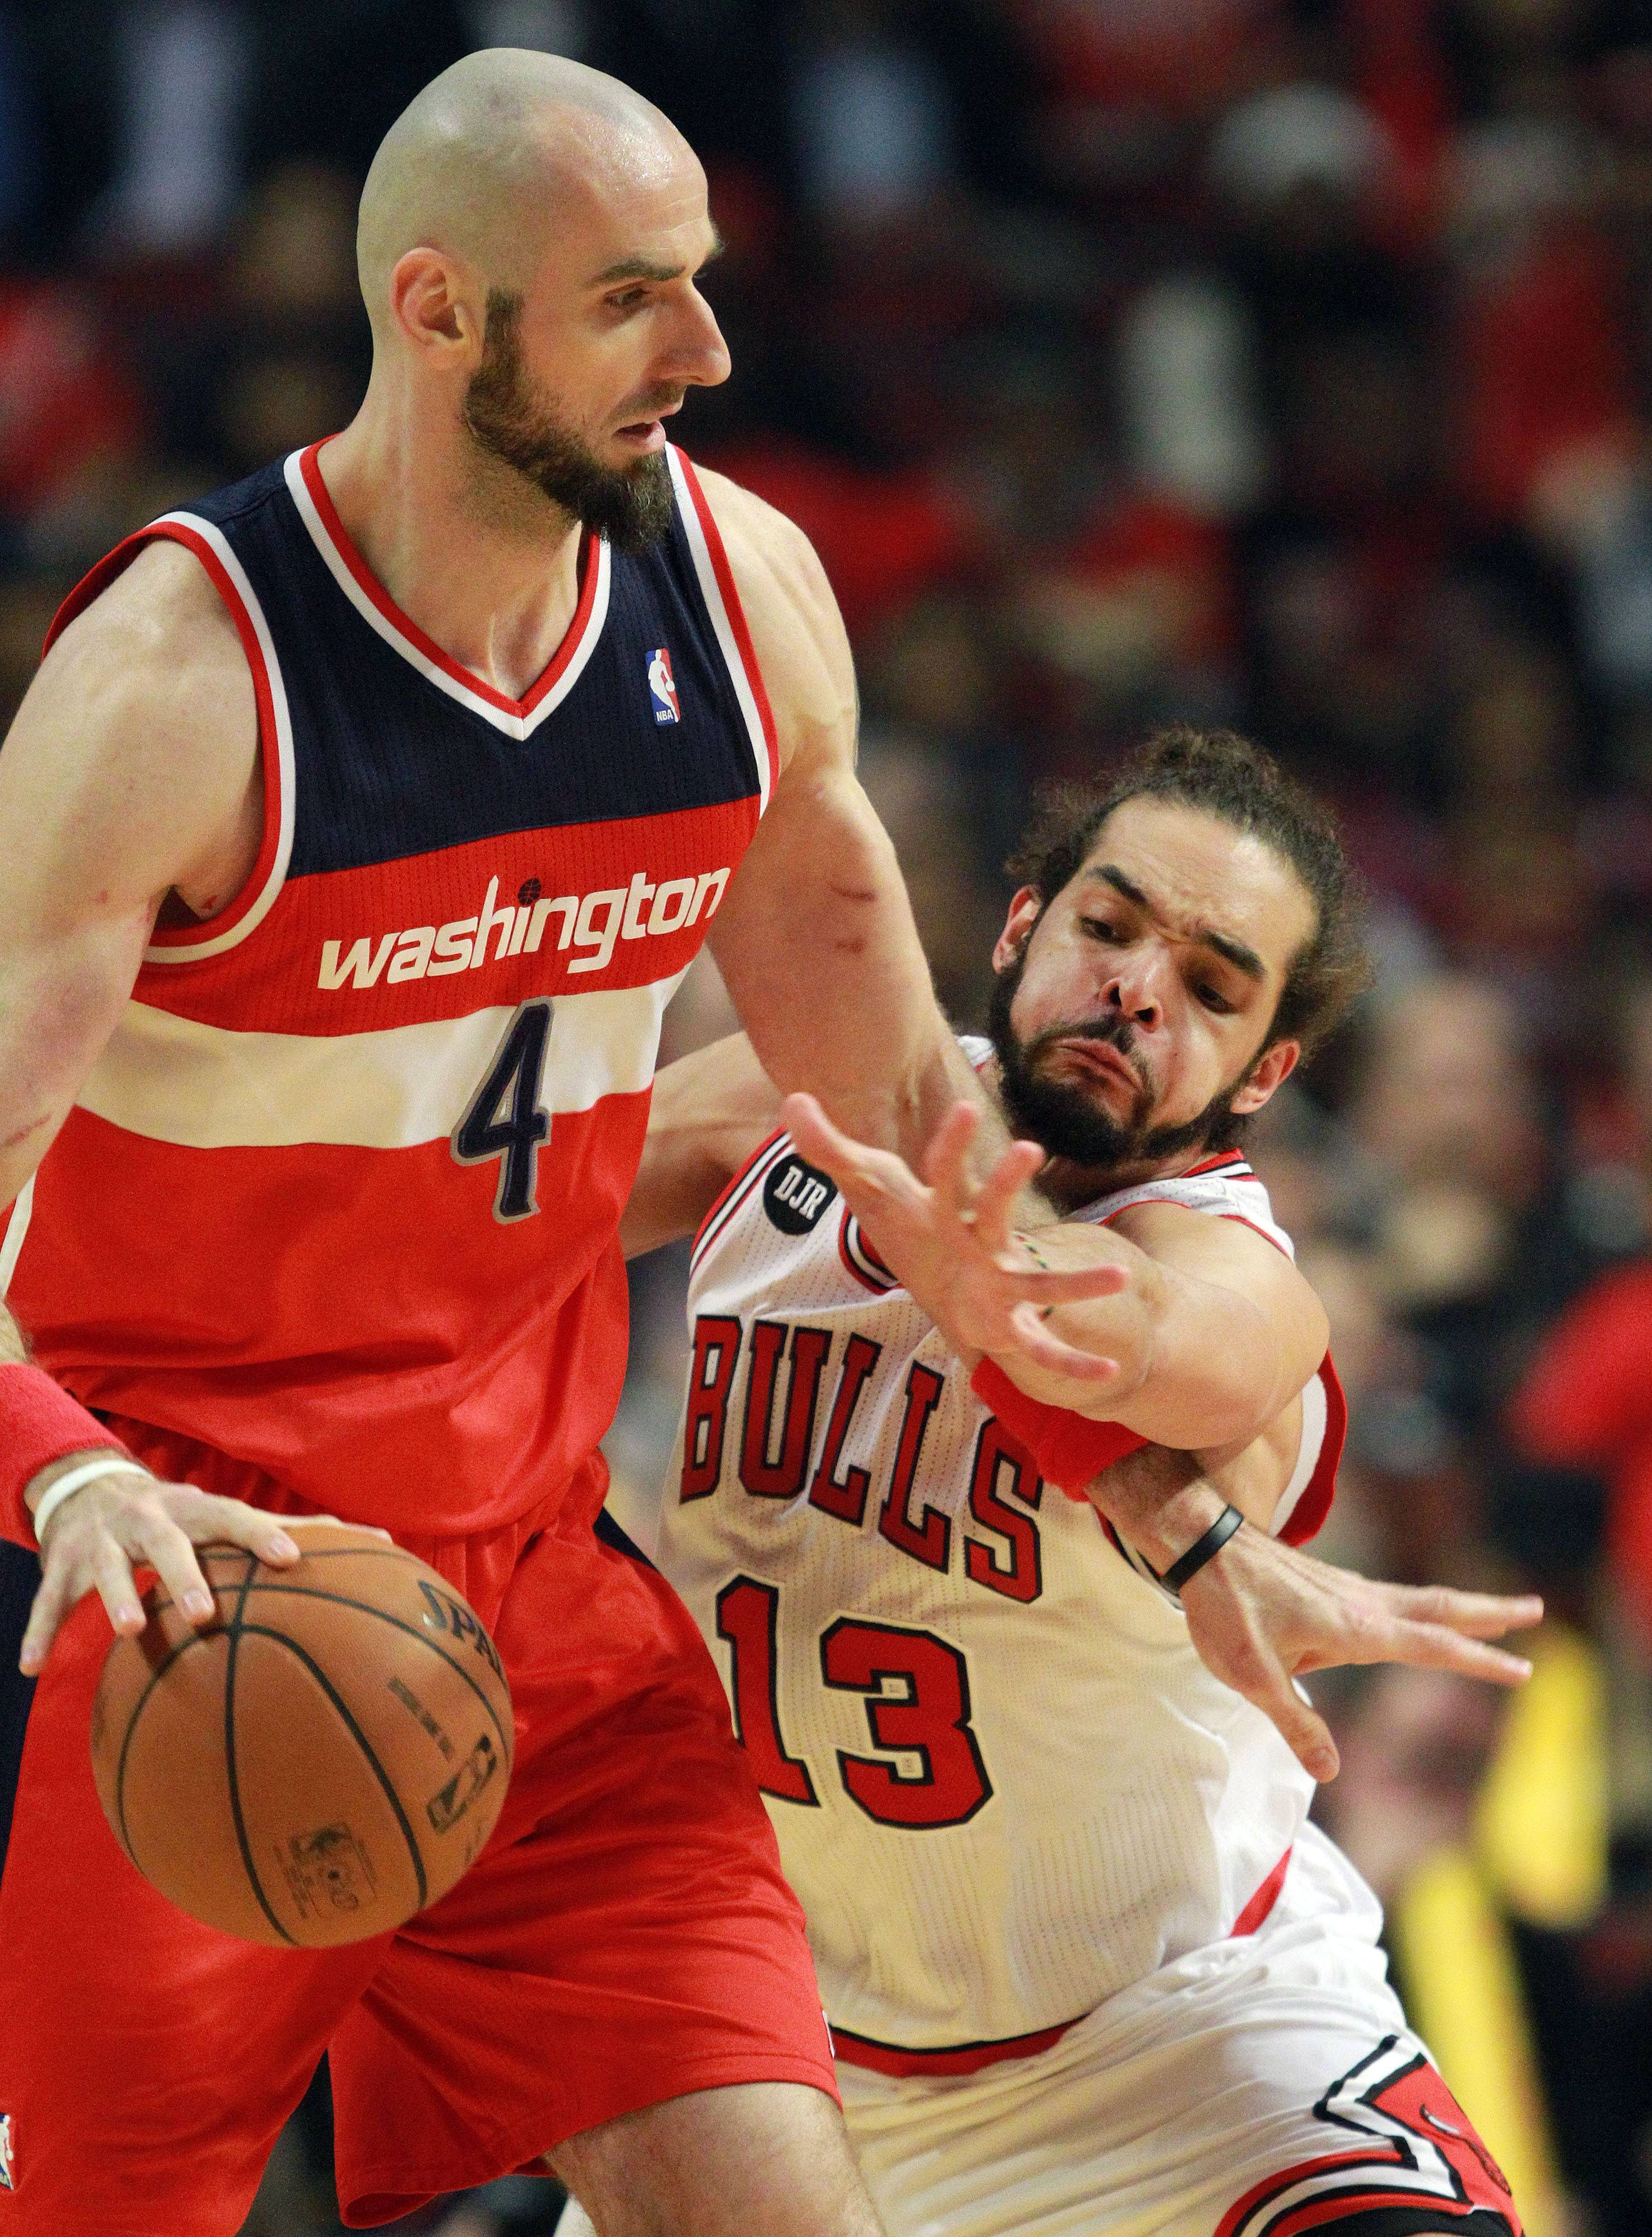 Chicago Bulls center Joakim Noah tries to strip the ball from Washington Wizards center Marcin Gortat during the Bulls 75-69 loss in game five of first-round of the NBA playoffs Tuesday night at the United Center.